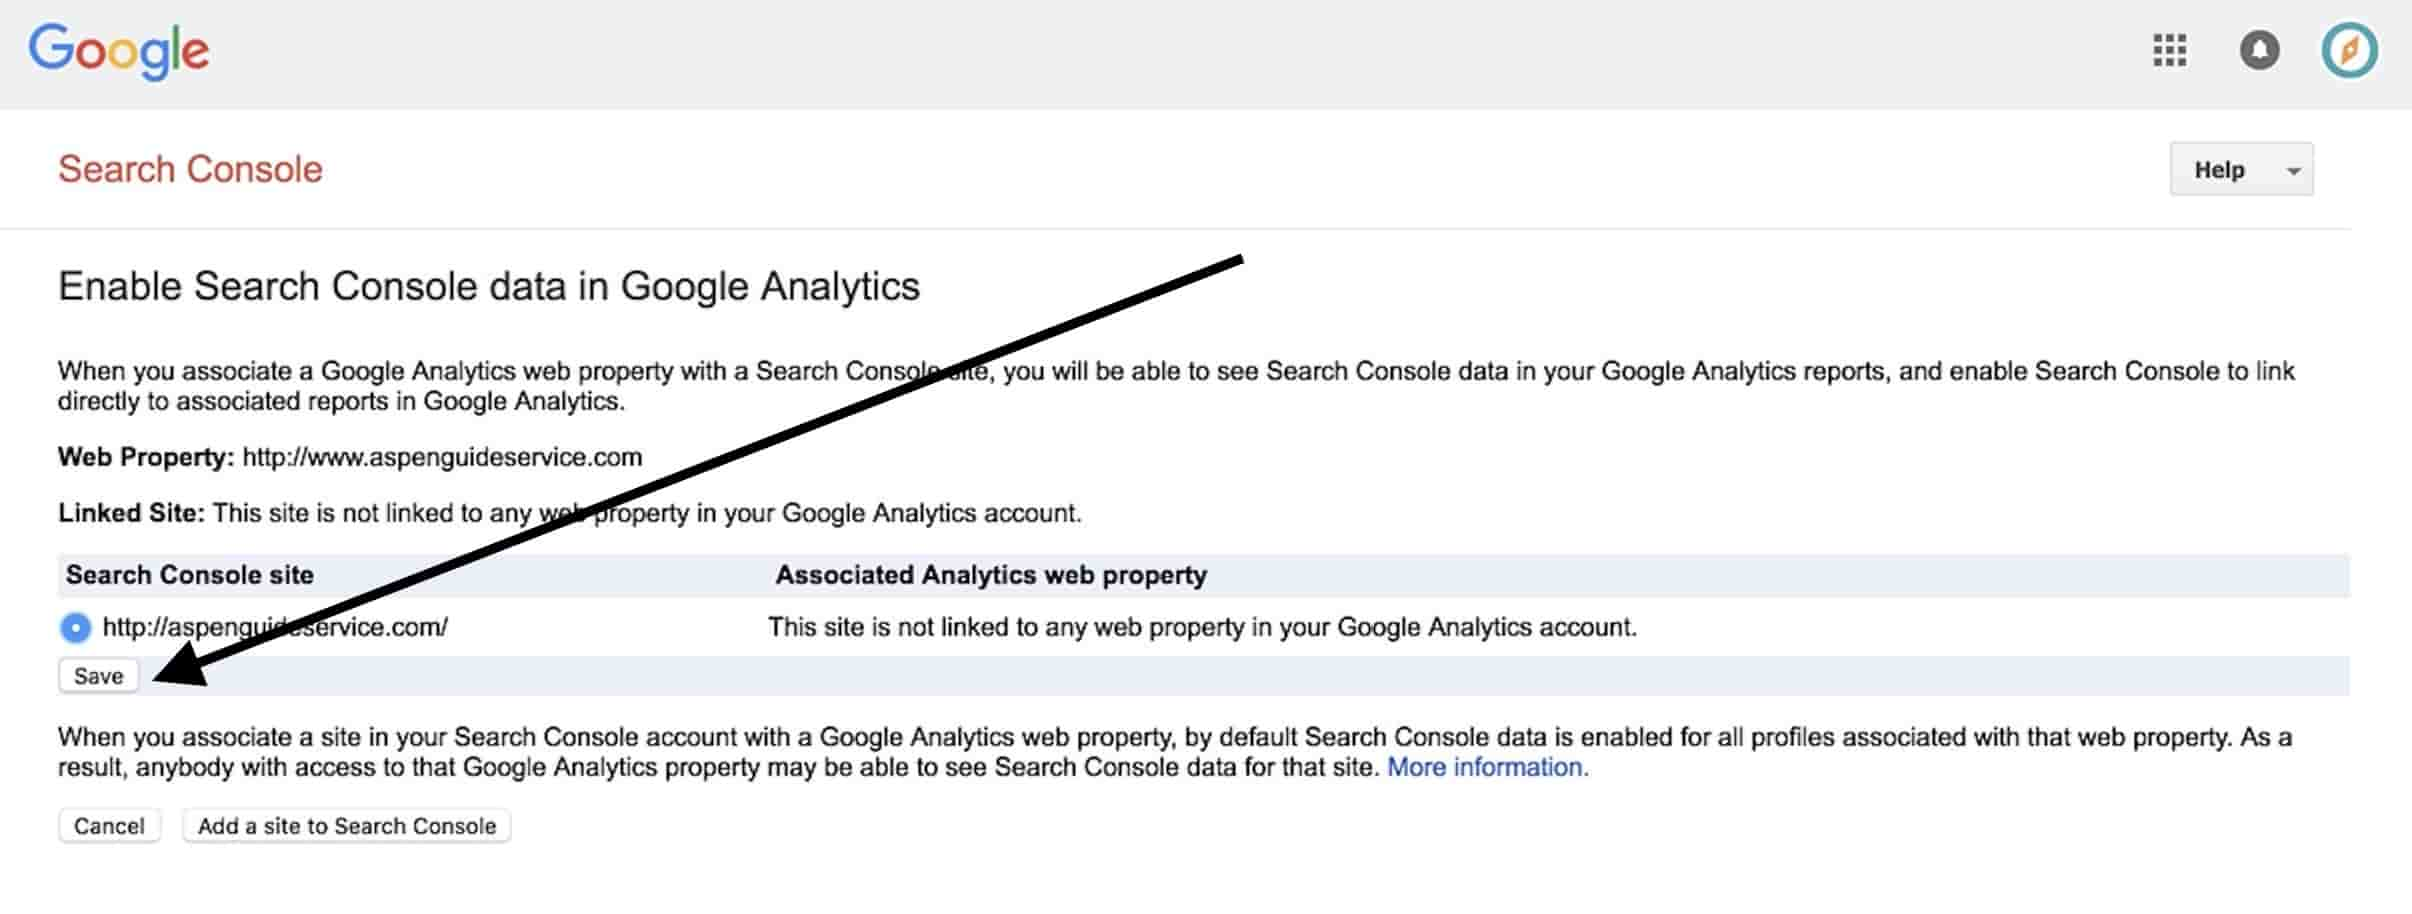 link-google-analytics-to-search-console_Save-min